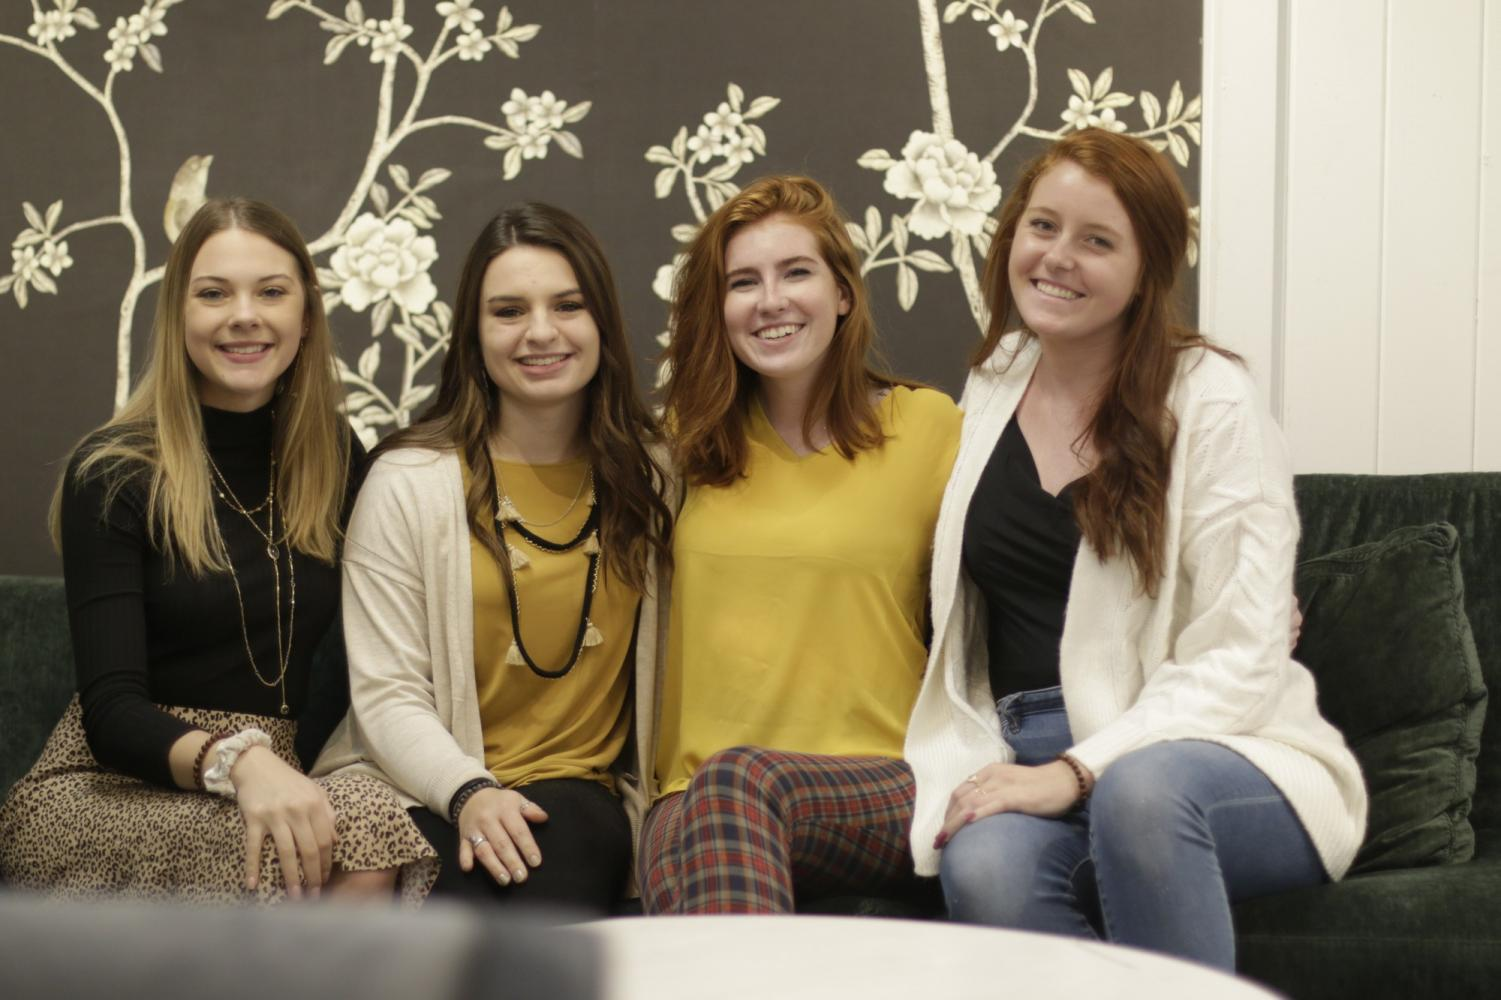 Third year interior architecture students (from left to right) Brenna Heller, Gina Nolan, Teagan Ingalls and Julia Taylor took their designs public at the High Point Market's fall show.